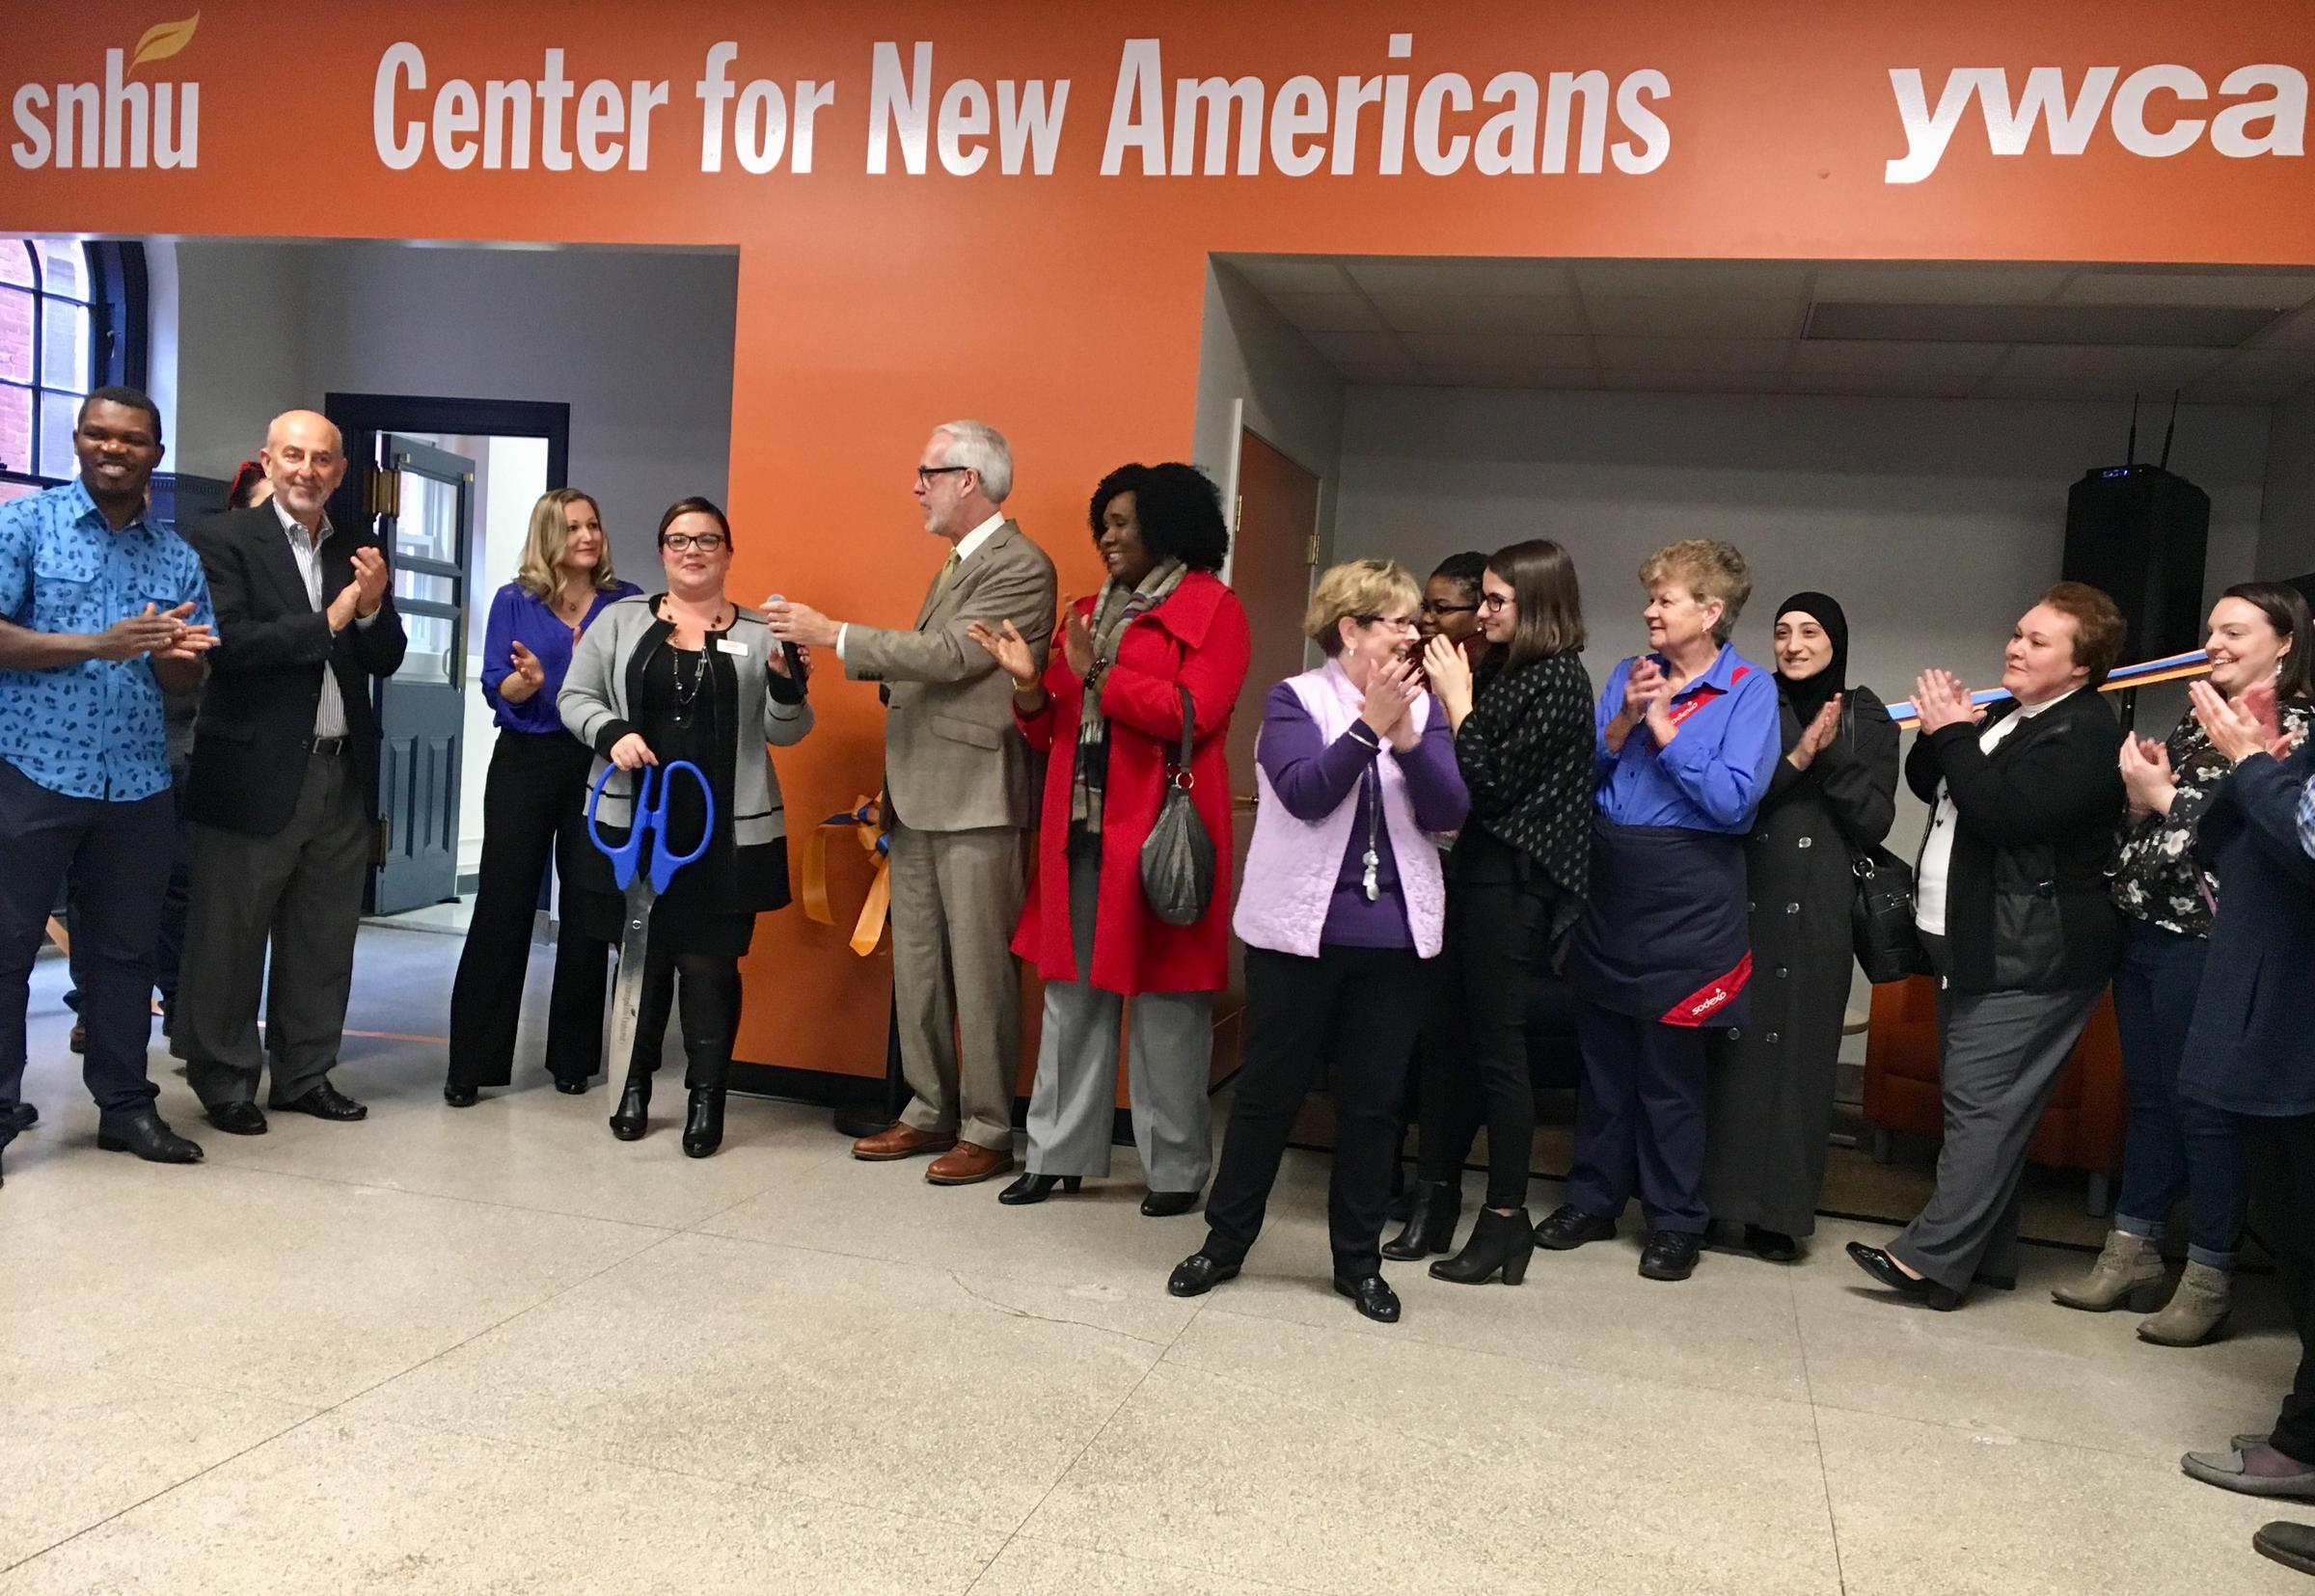 SNHU YWCA Open Center For New Americans In Manchester